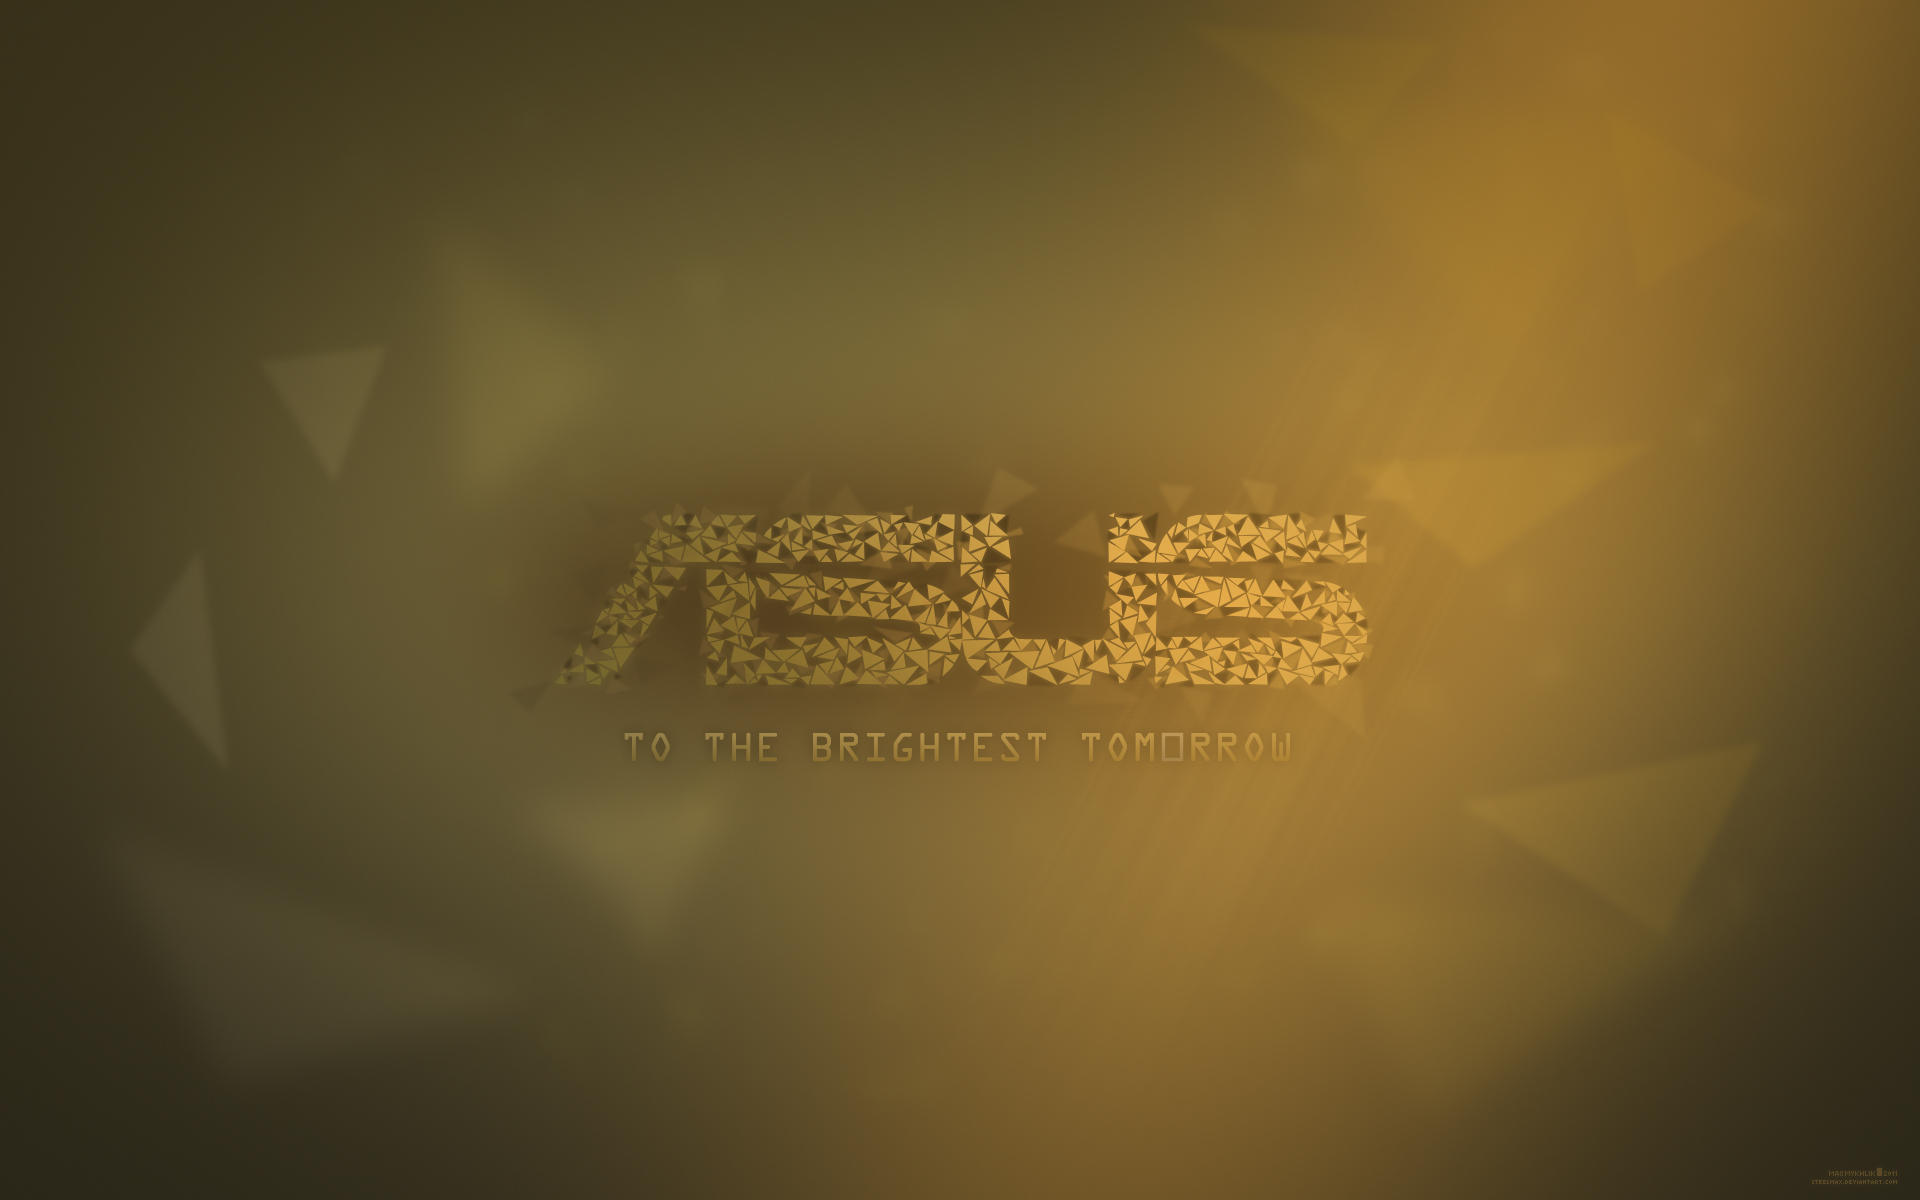 Asus - To the Brightest Tomorrow Wallpaper by Steelmax on ...